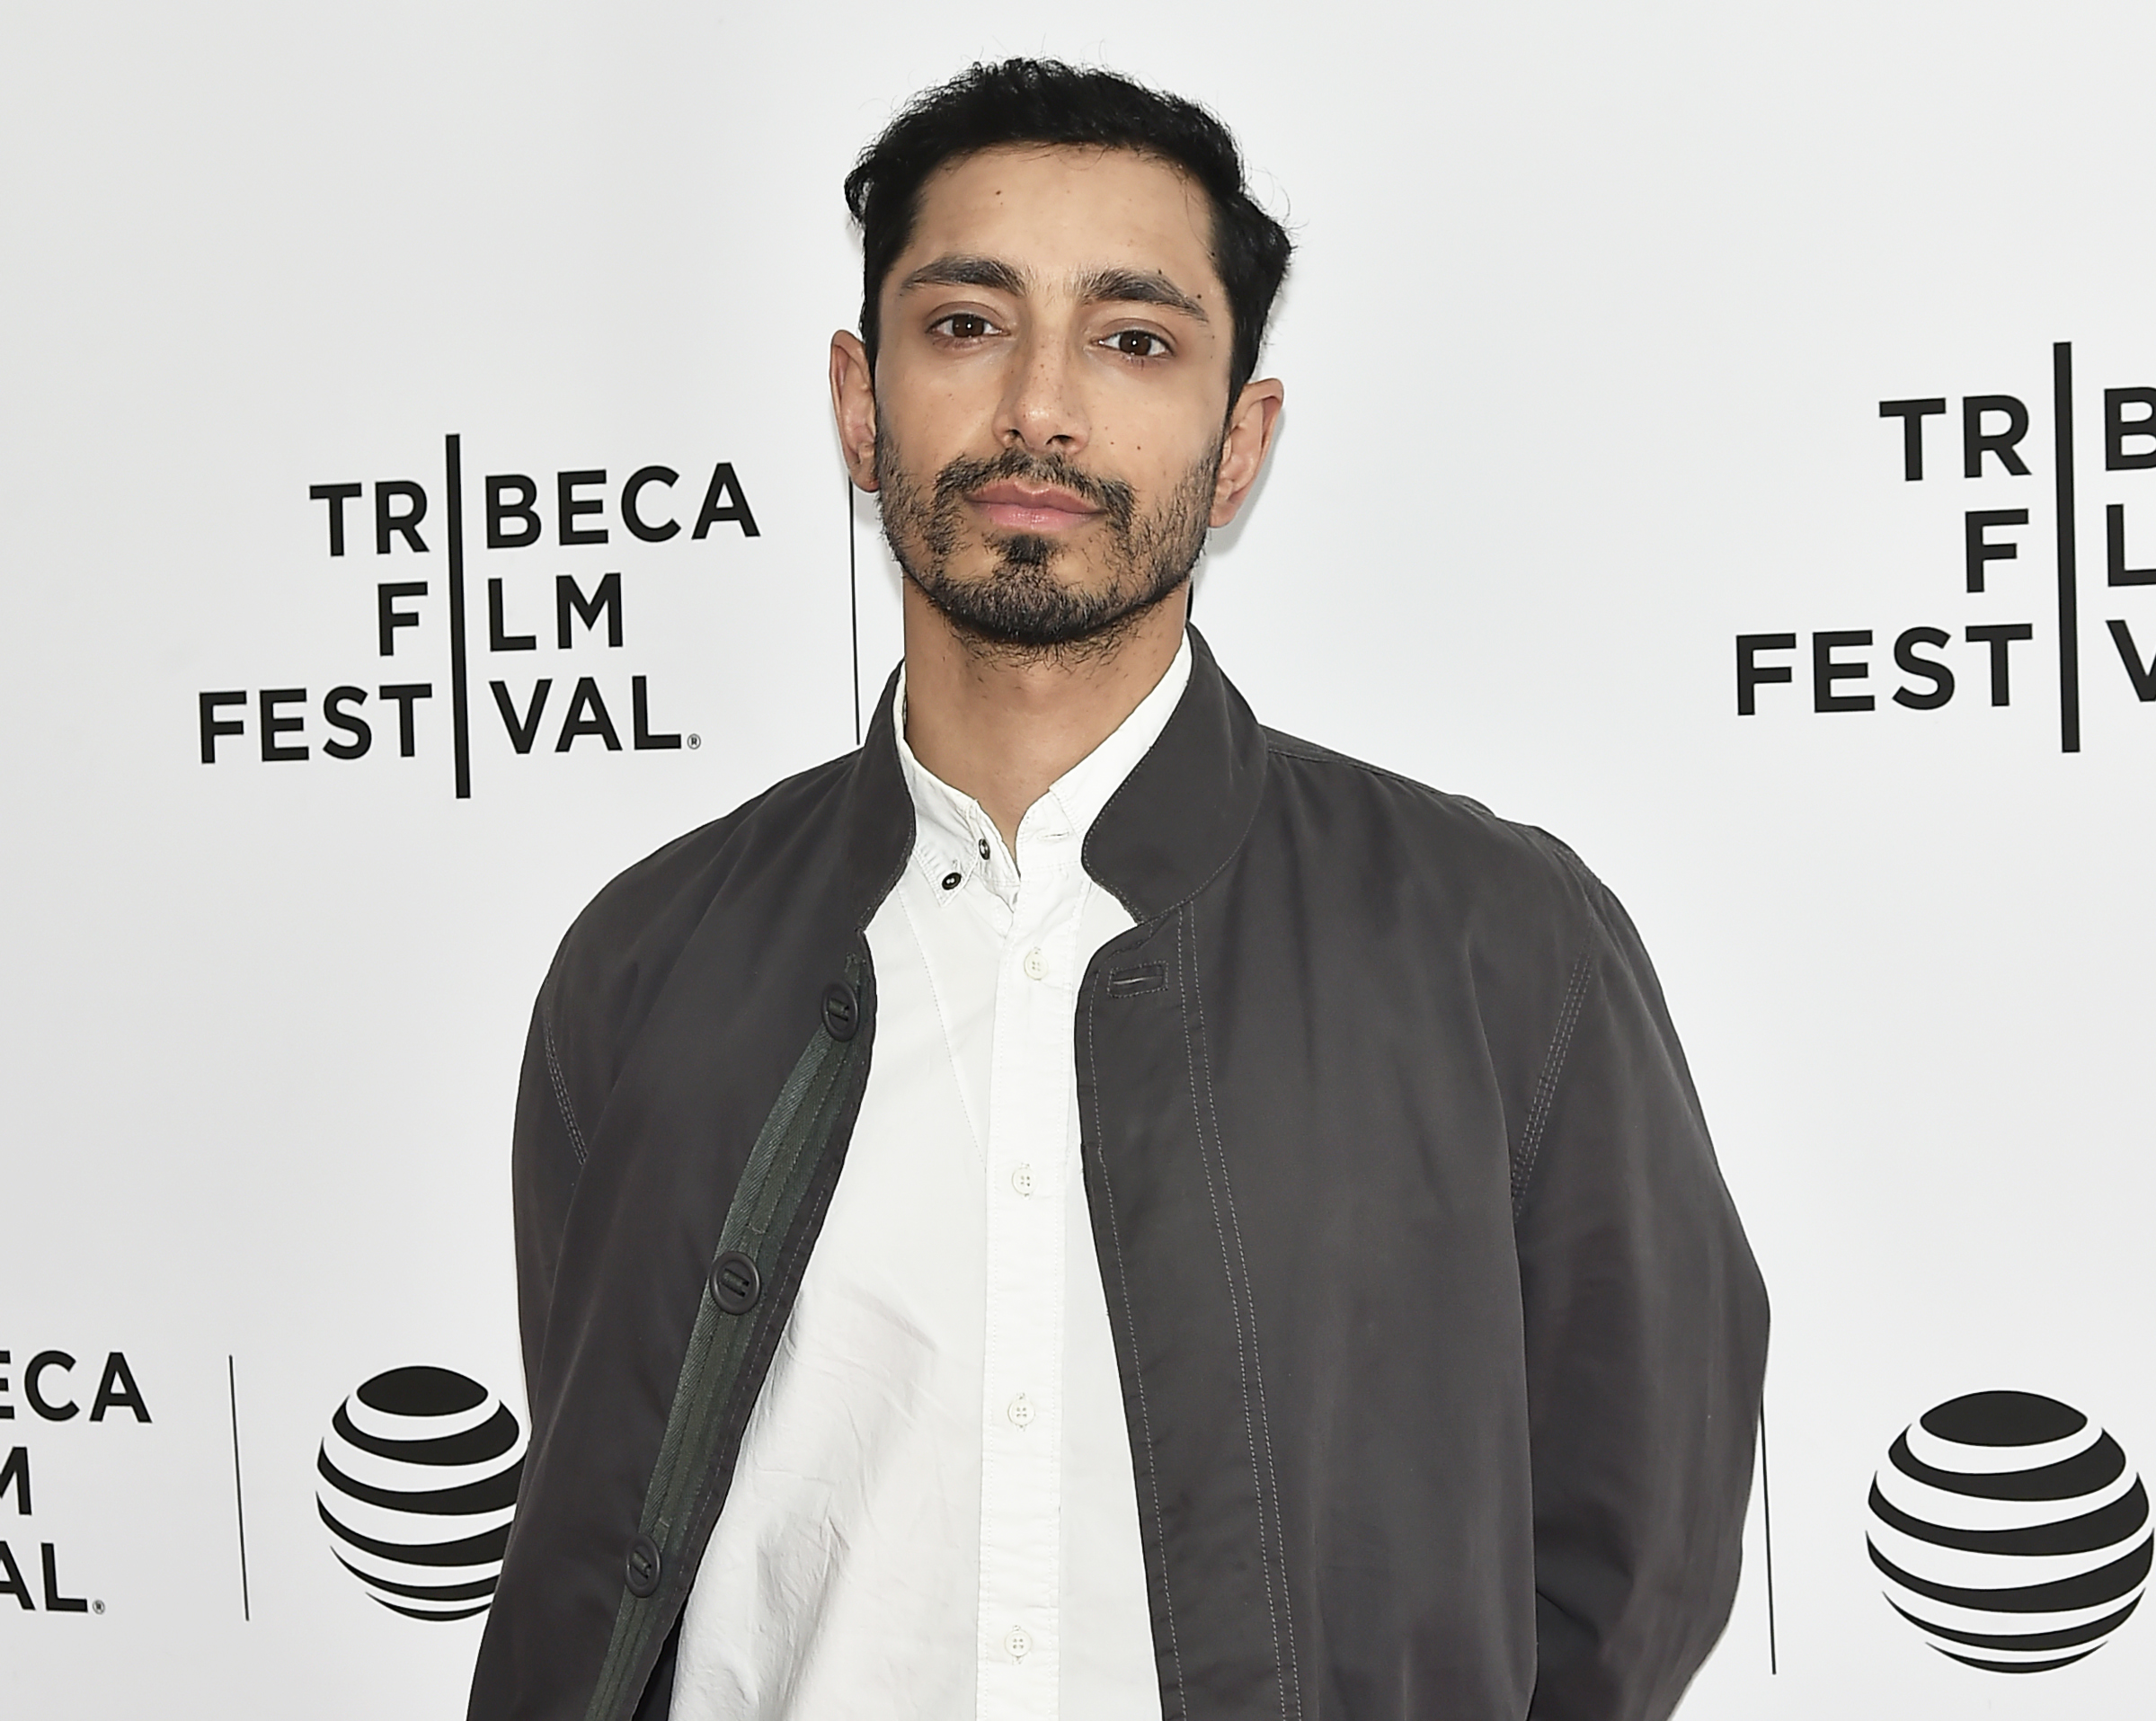 NEW YORK, NY - APRIL 22: Actor and rapper Riz Ahmed aka Riz MC, attends Tribeca Tune In: 'The Night Of' Screening during 2016 Tribeca Film Festival at SVA Theatre 1 on April 22, 2016 in New York City. (Photo by Gilbert Carrasquillo/FilmMagic)